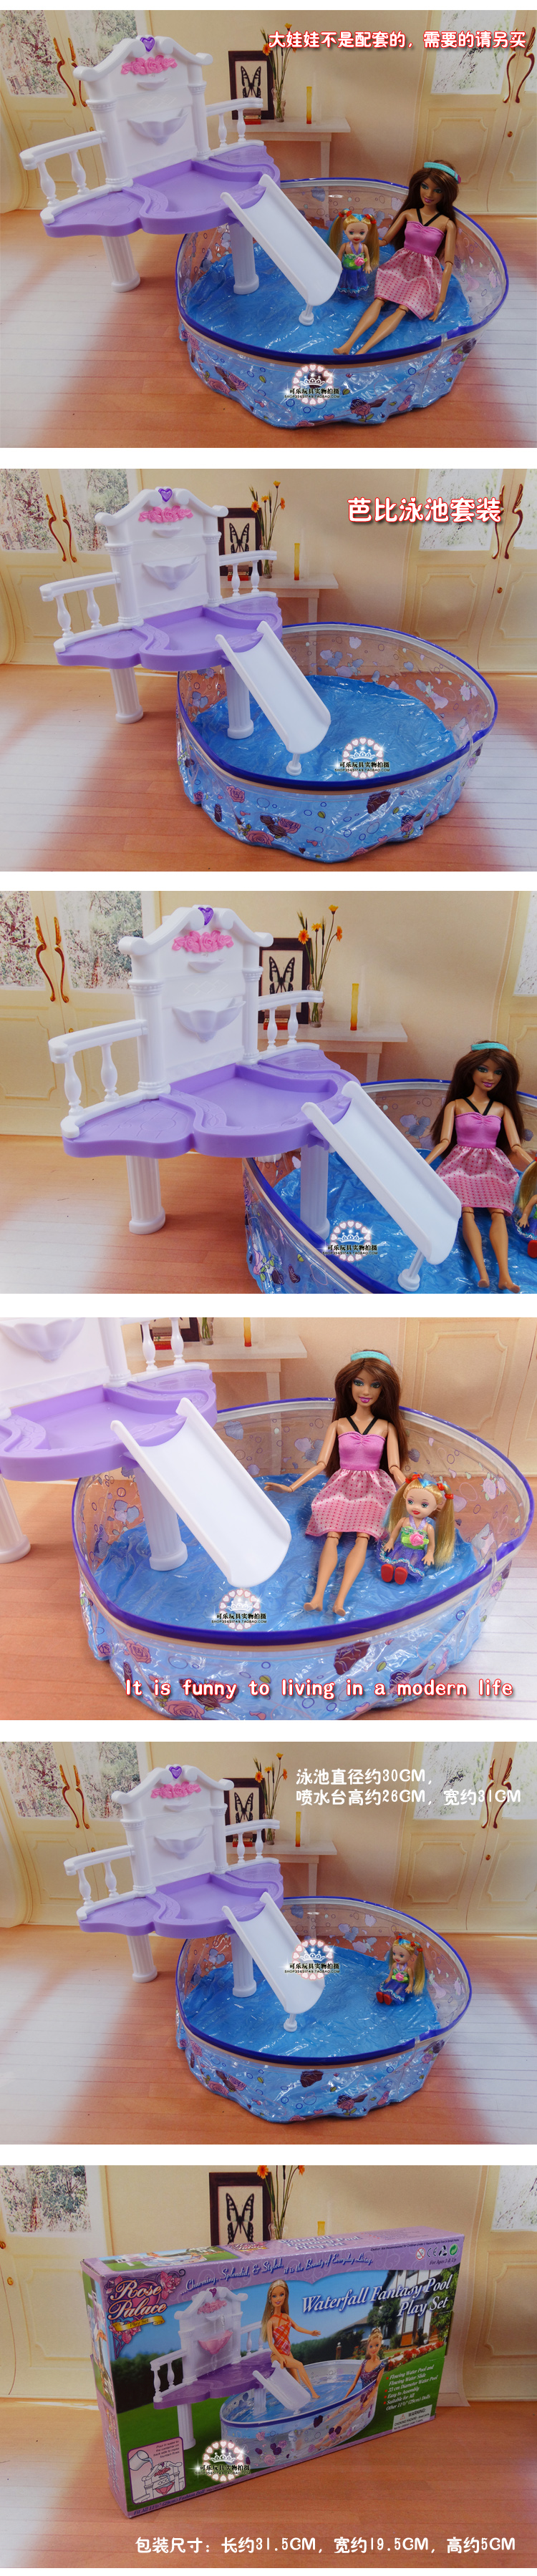 Doll's Swimming Pool Set / Dollhouse fashion Furniture Baby Toy Accessories Decoration Original Box for barbie Kurhn Doll